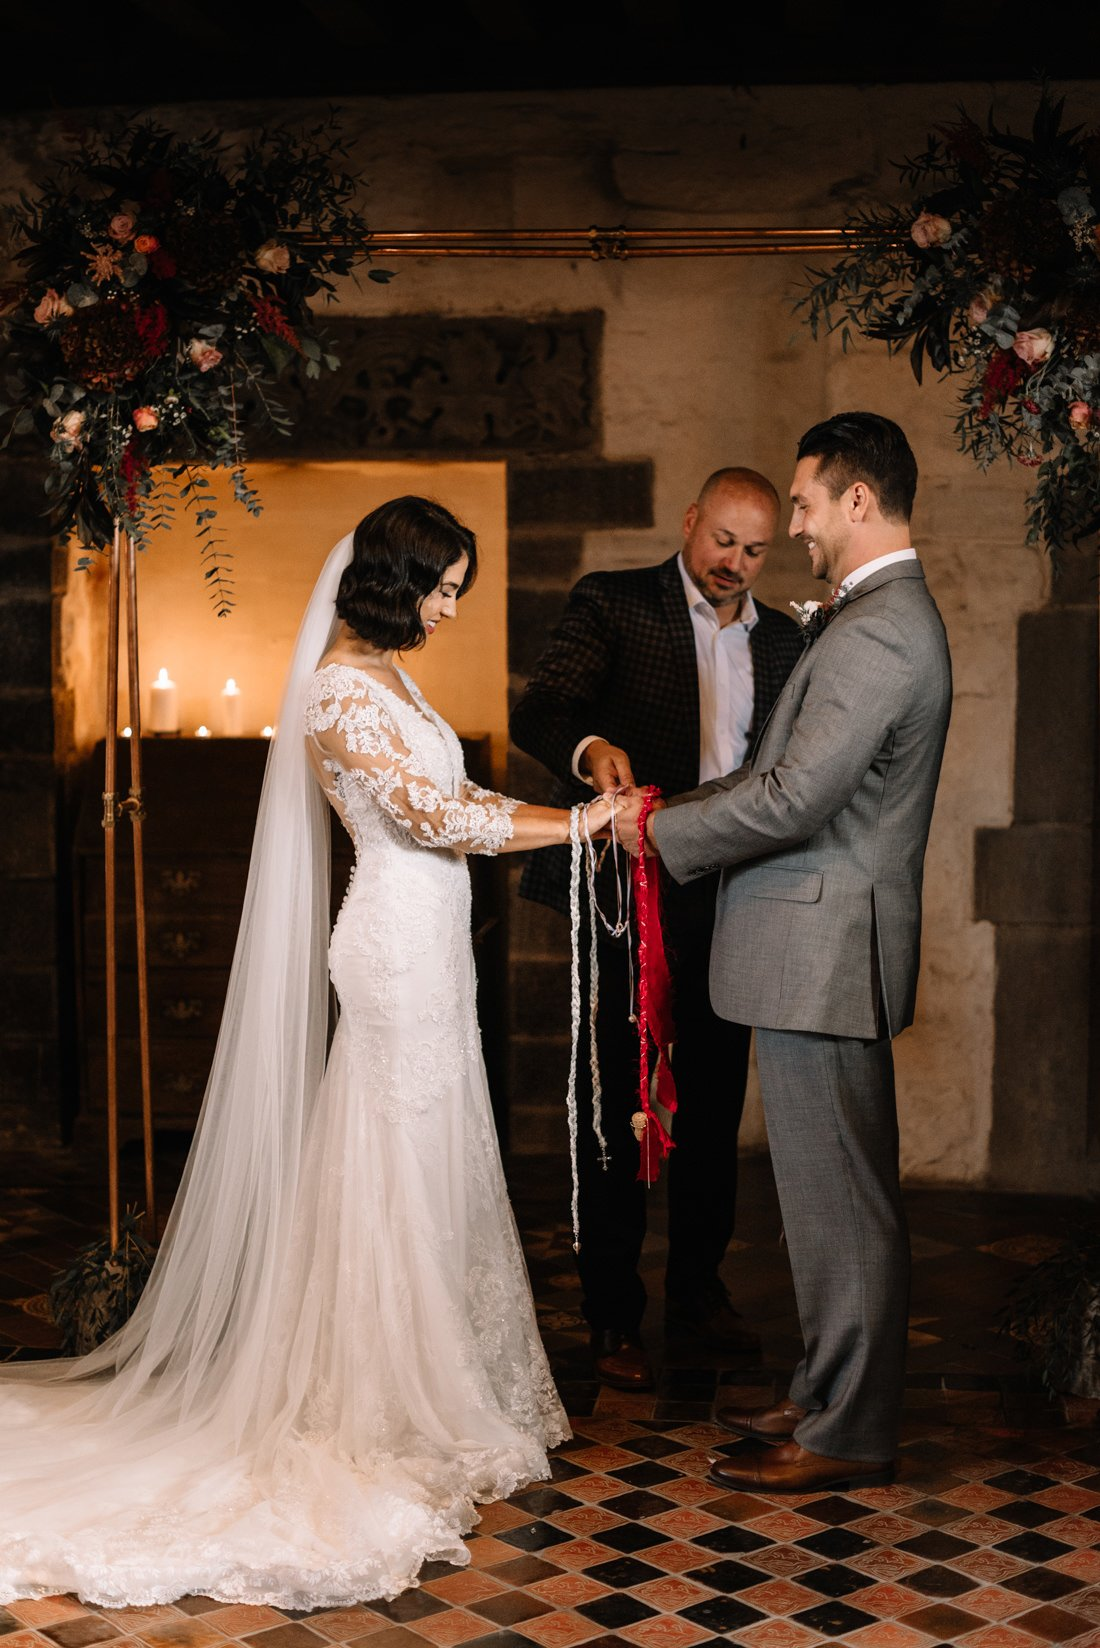 An Intimate Wedding at Drimnagh Castle